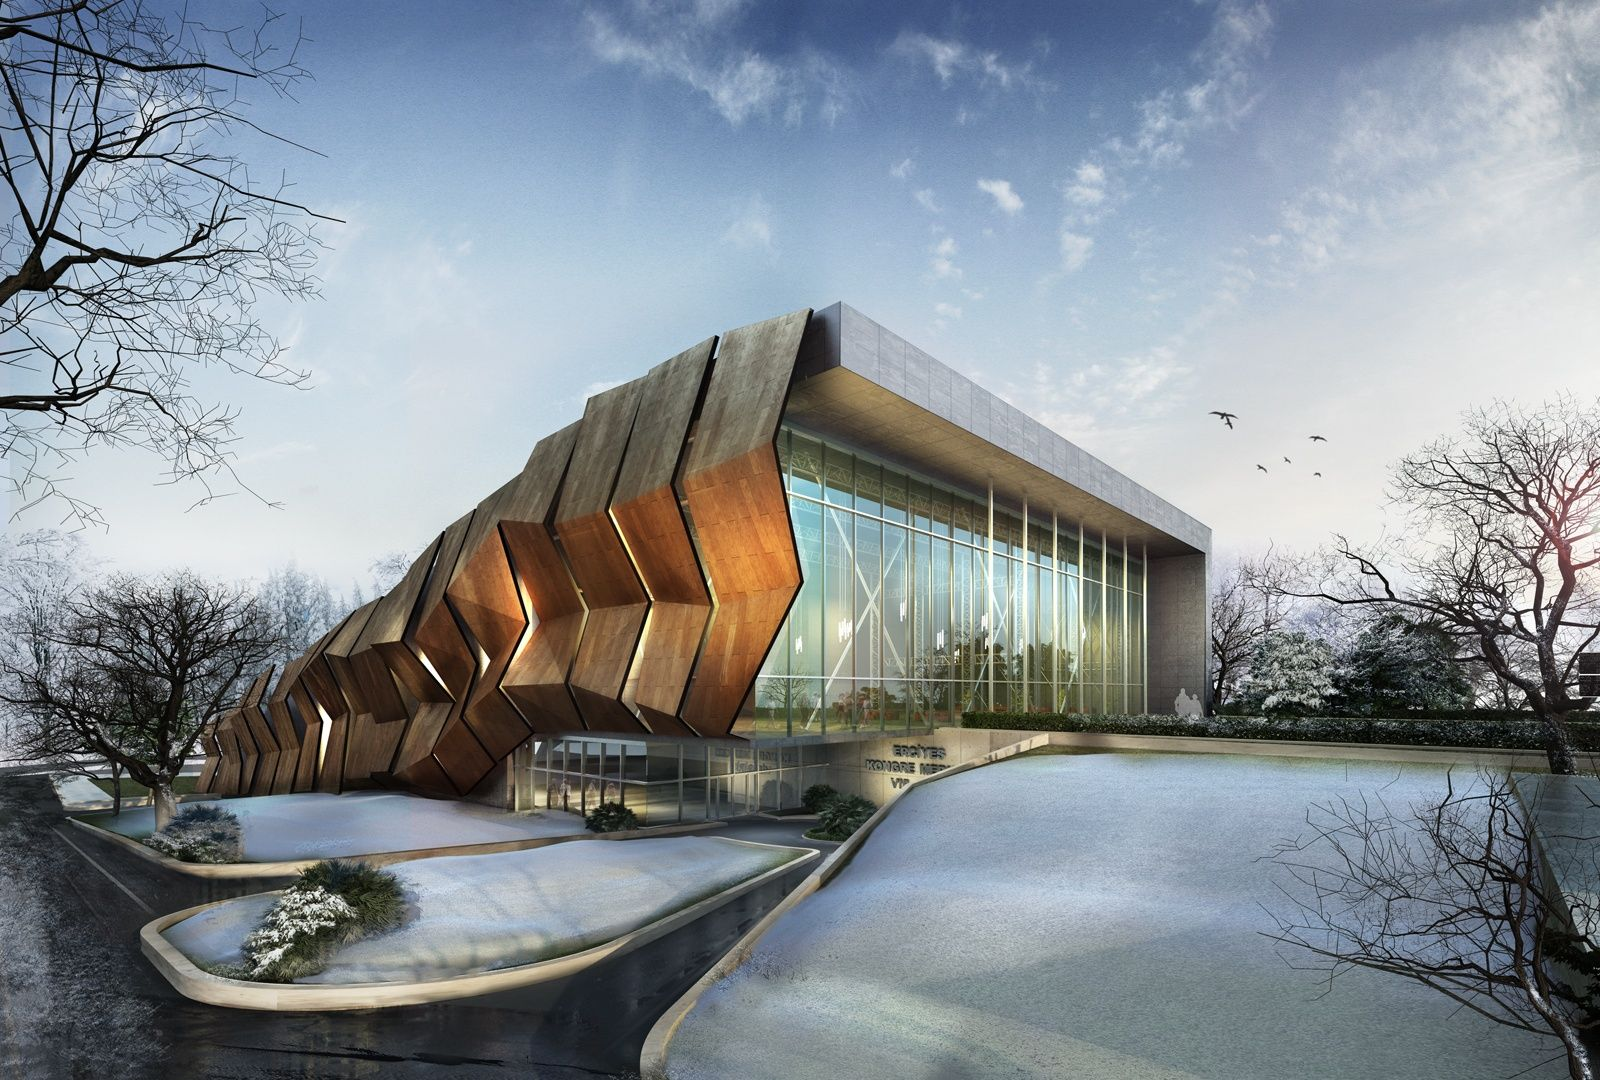 Best 25+ Convention centre ideas on Pinterest | Zaha hadid structures, Modern  architecture design and Zaha hadid